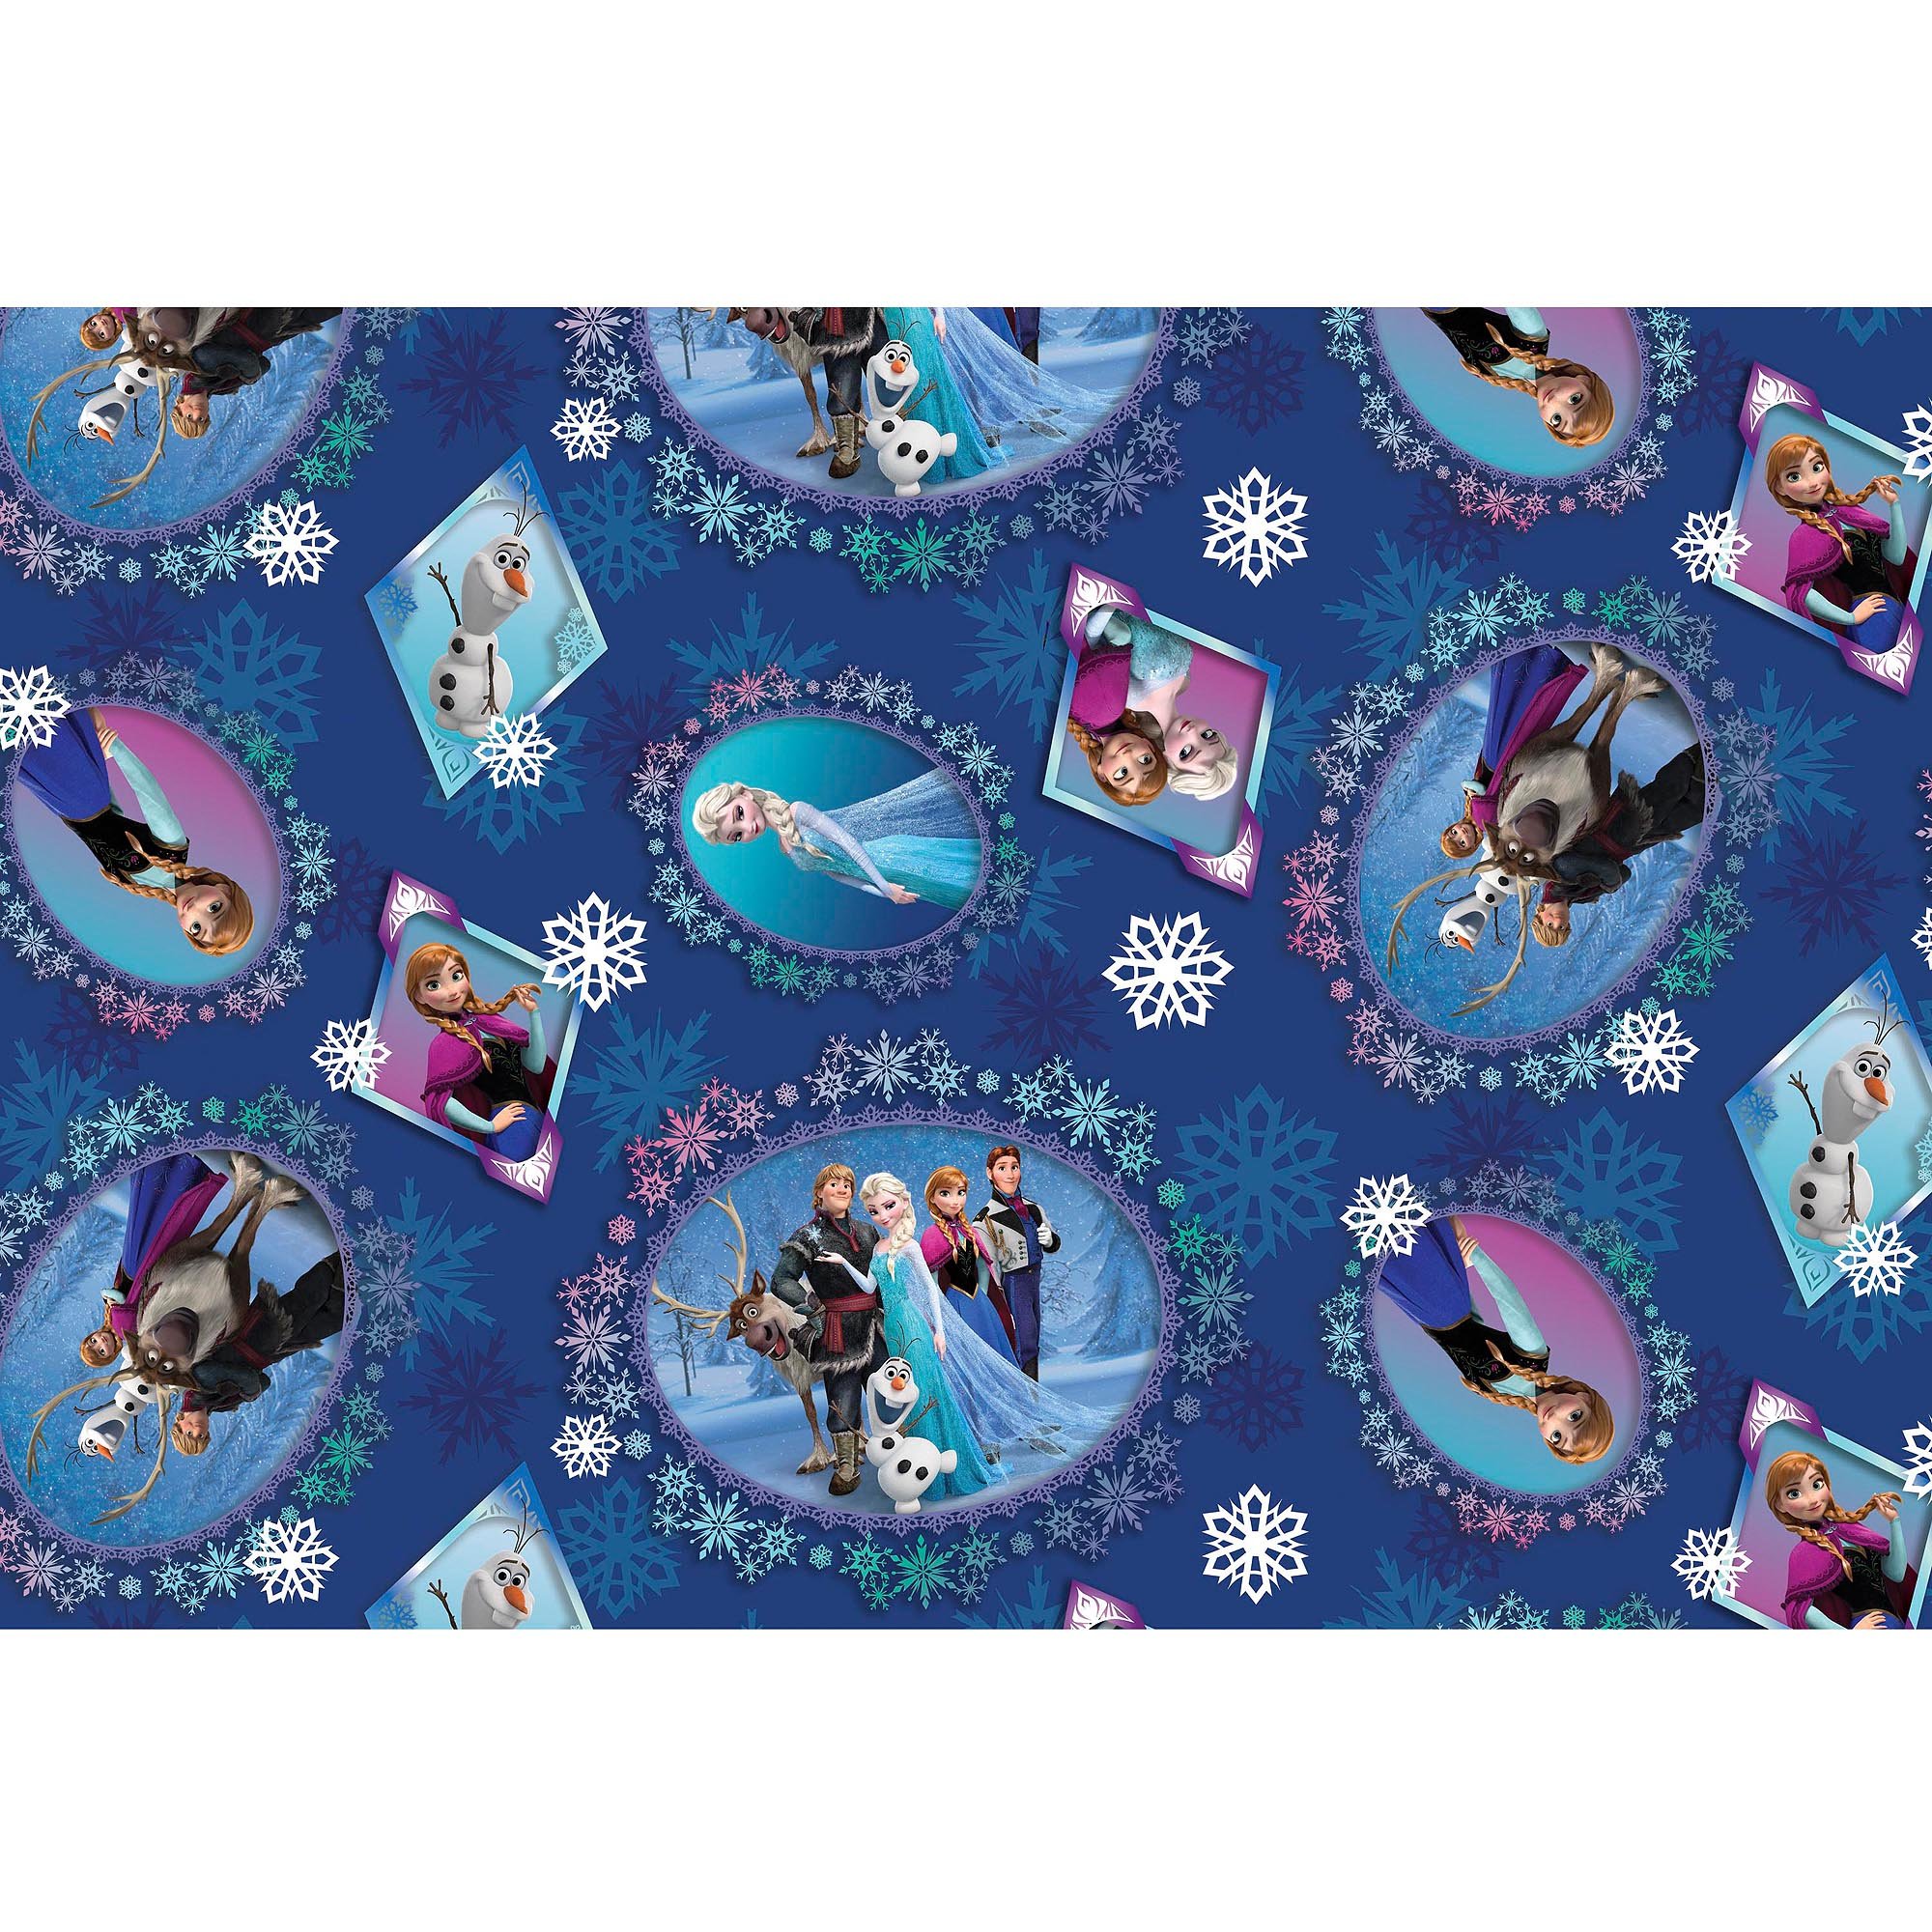 Disney Frozen Scenic Patch Digital Fabric by the Yard, Blue